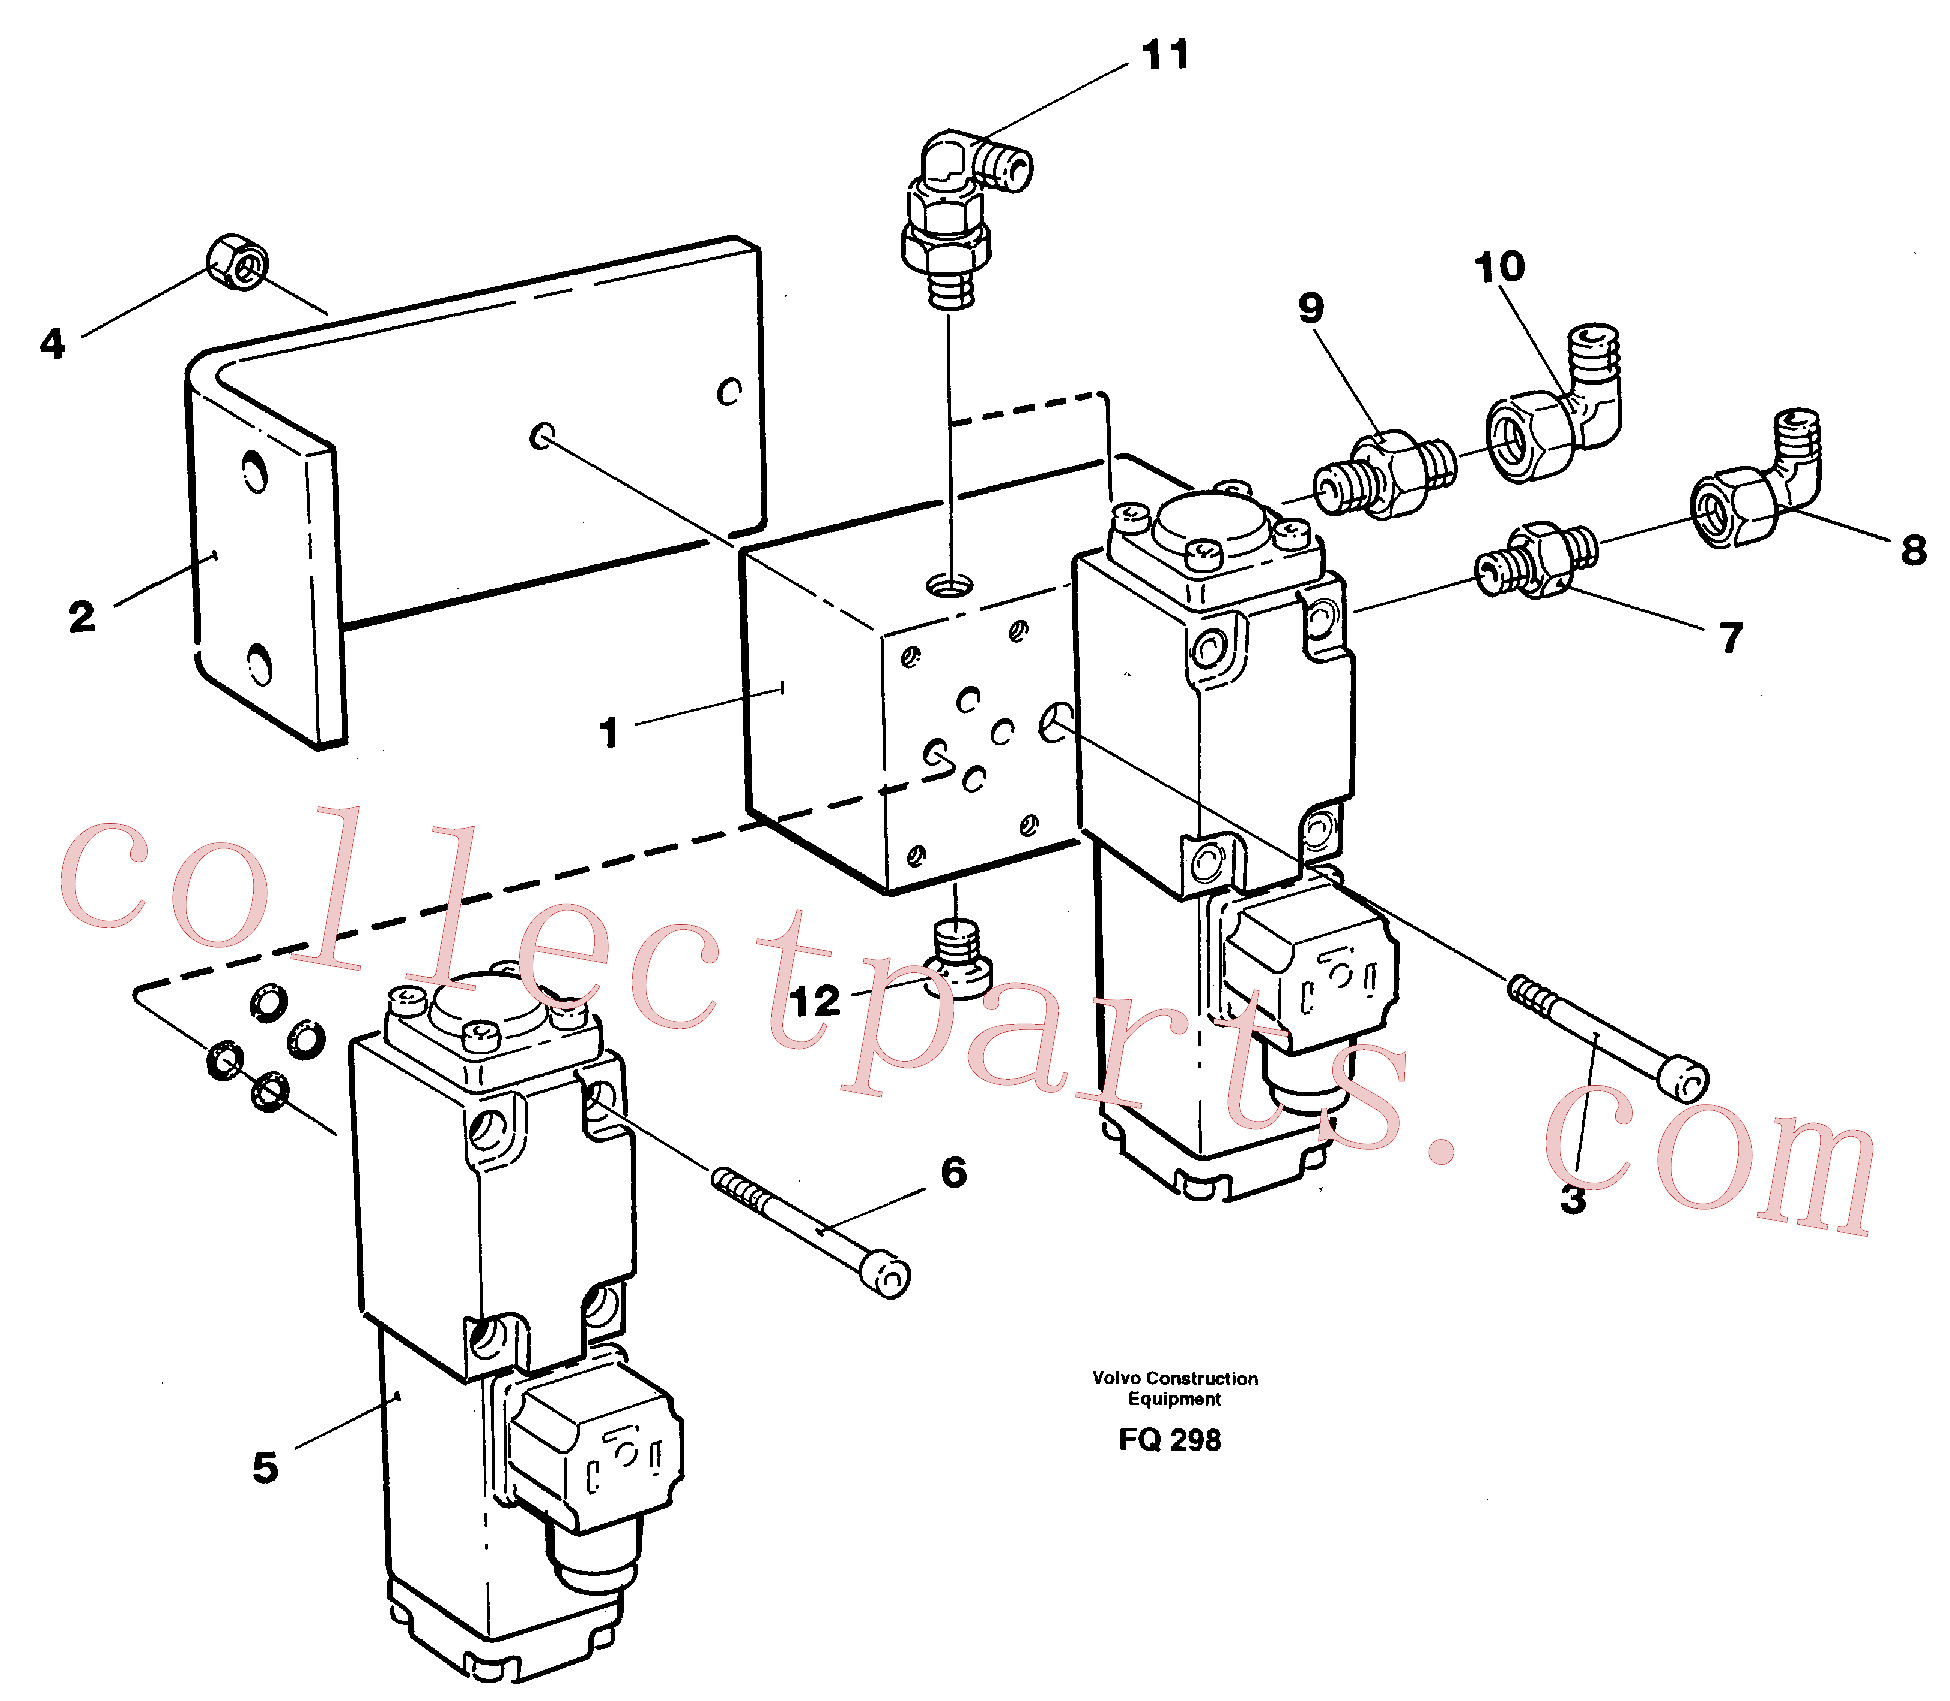 VOE14281965 for Volvo Electric valve block(FQ298 assembly)